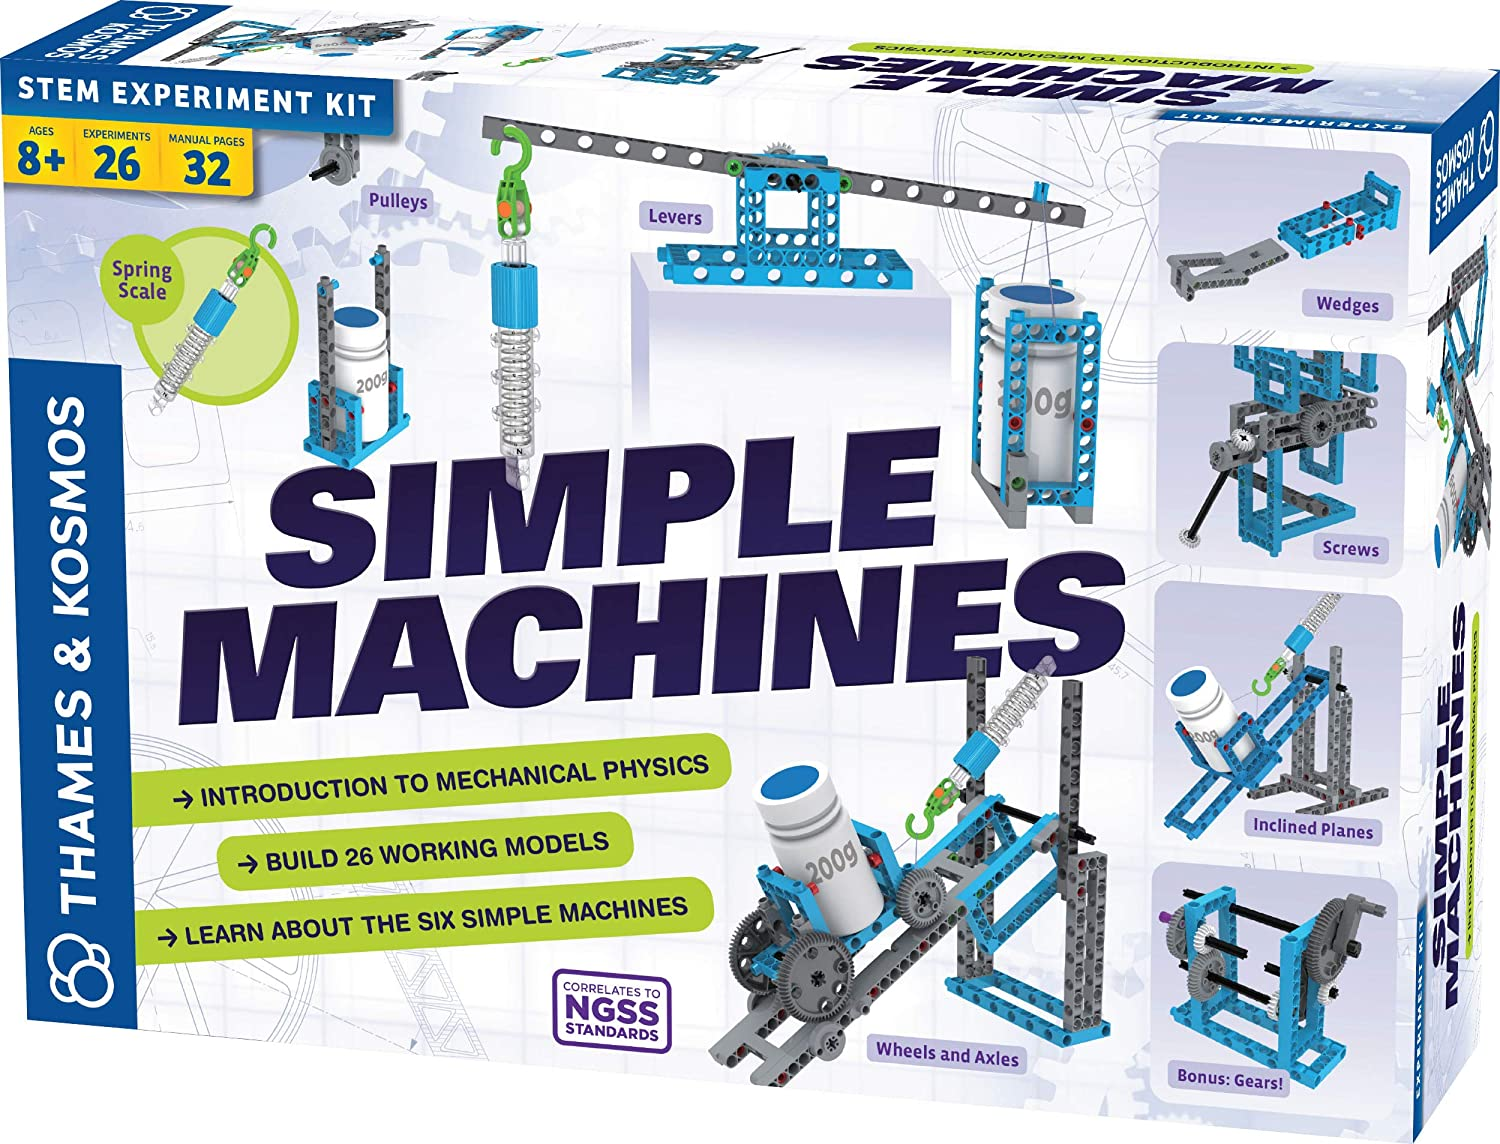 Thames & Kosmos Simple Machines Science Experiment & Model Building Kit,  Introduction to Mechanical Physics, Build 26 Models to Investigate The 6